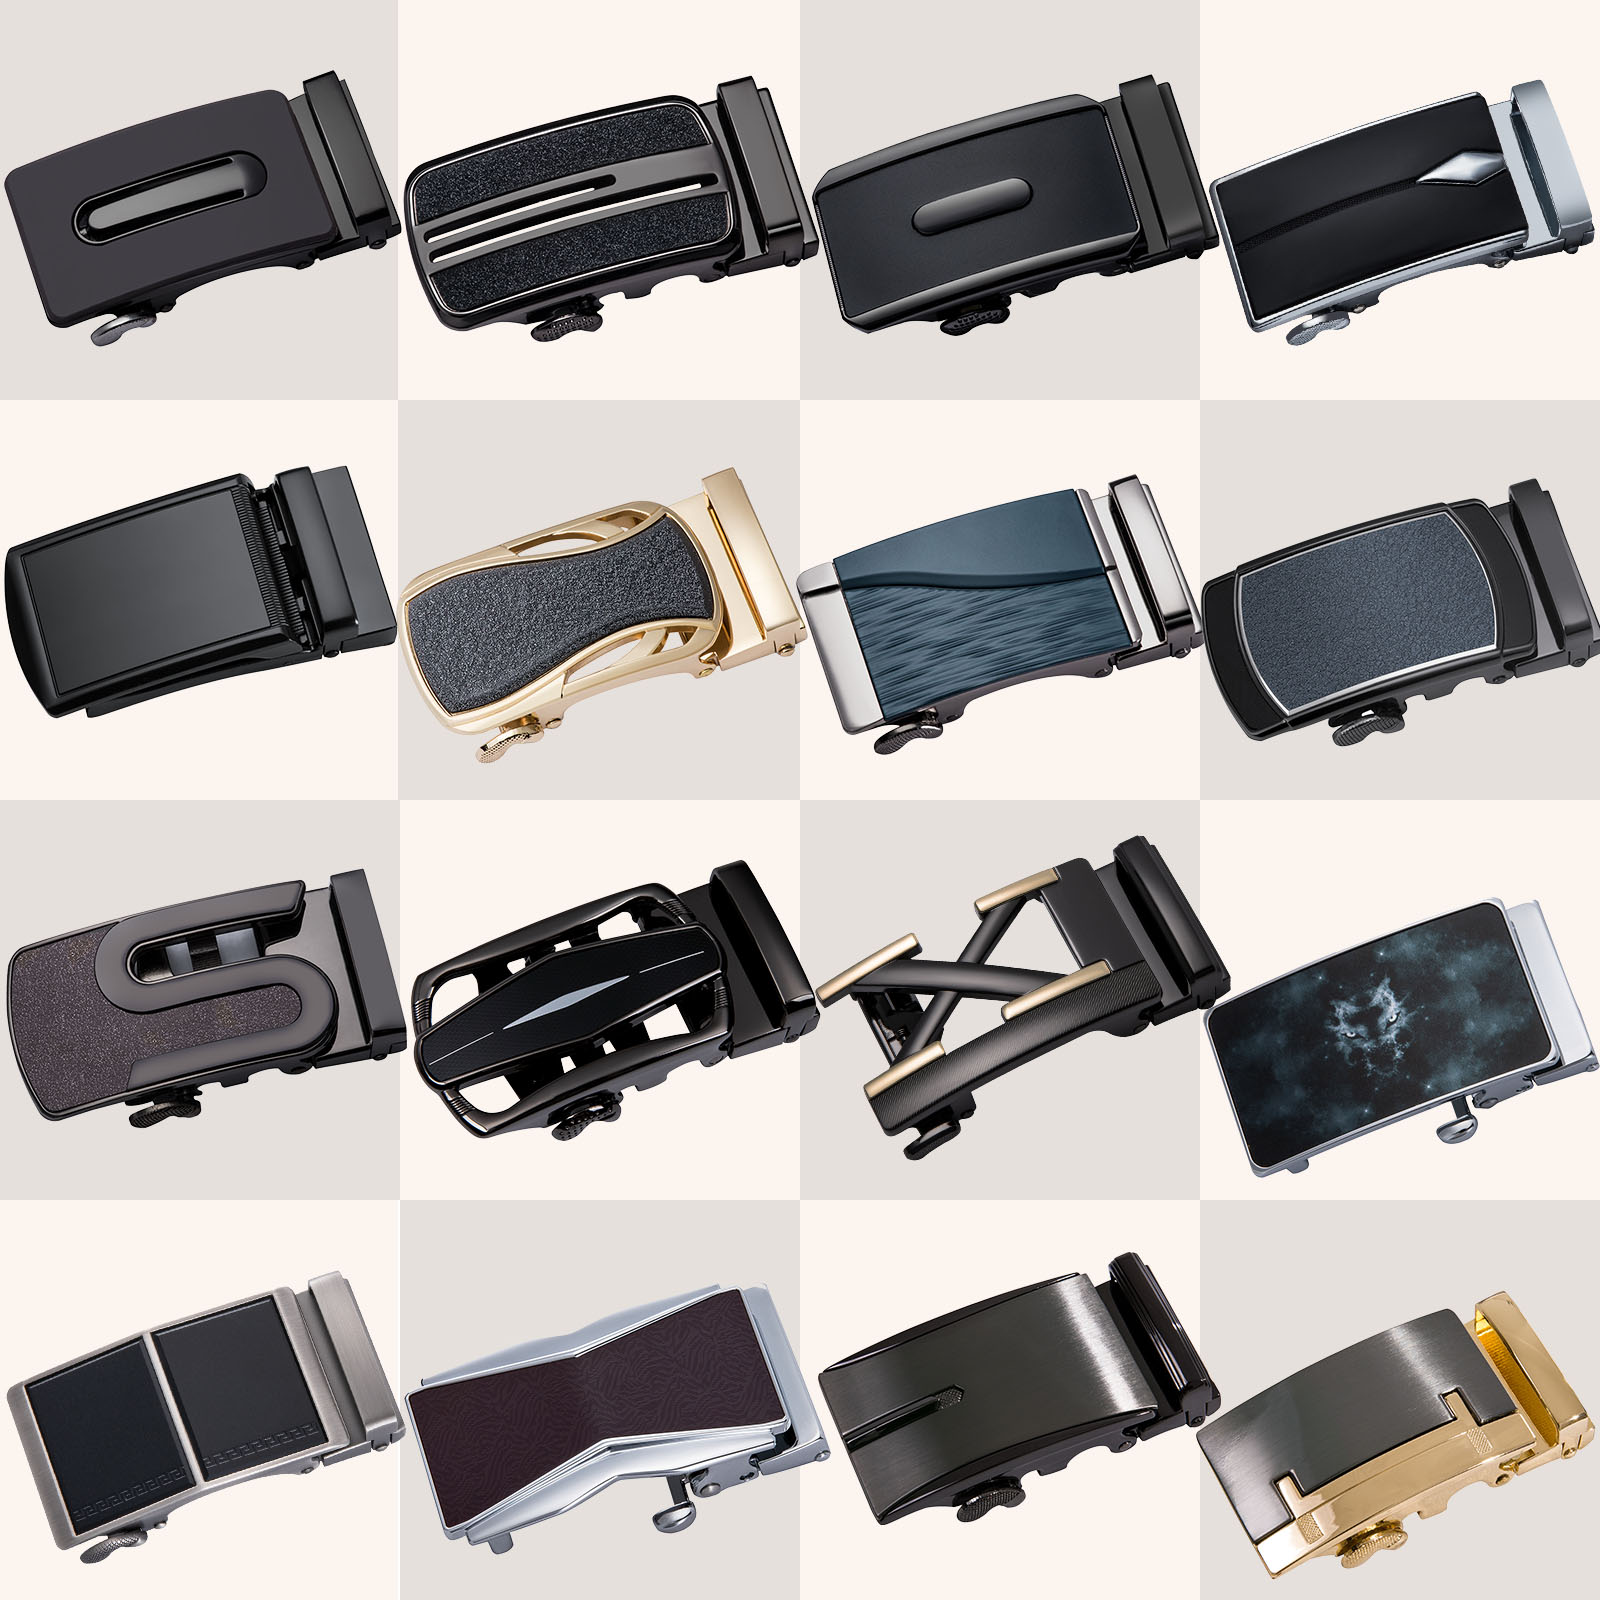 Luxury Belt Buckle For Men Automatic Belt Buckle Head Fashion Automatic Buckles For 3.5cm Wide Ratchet Mens Belt Buckle DiBanGu